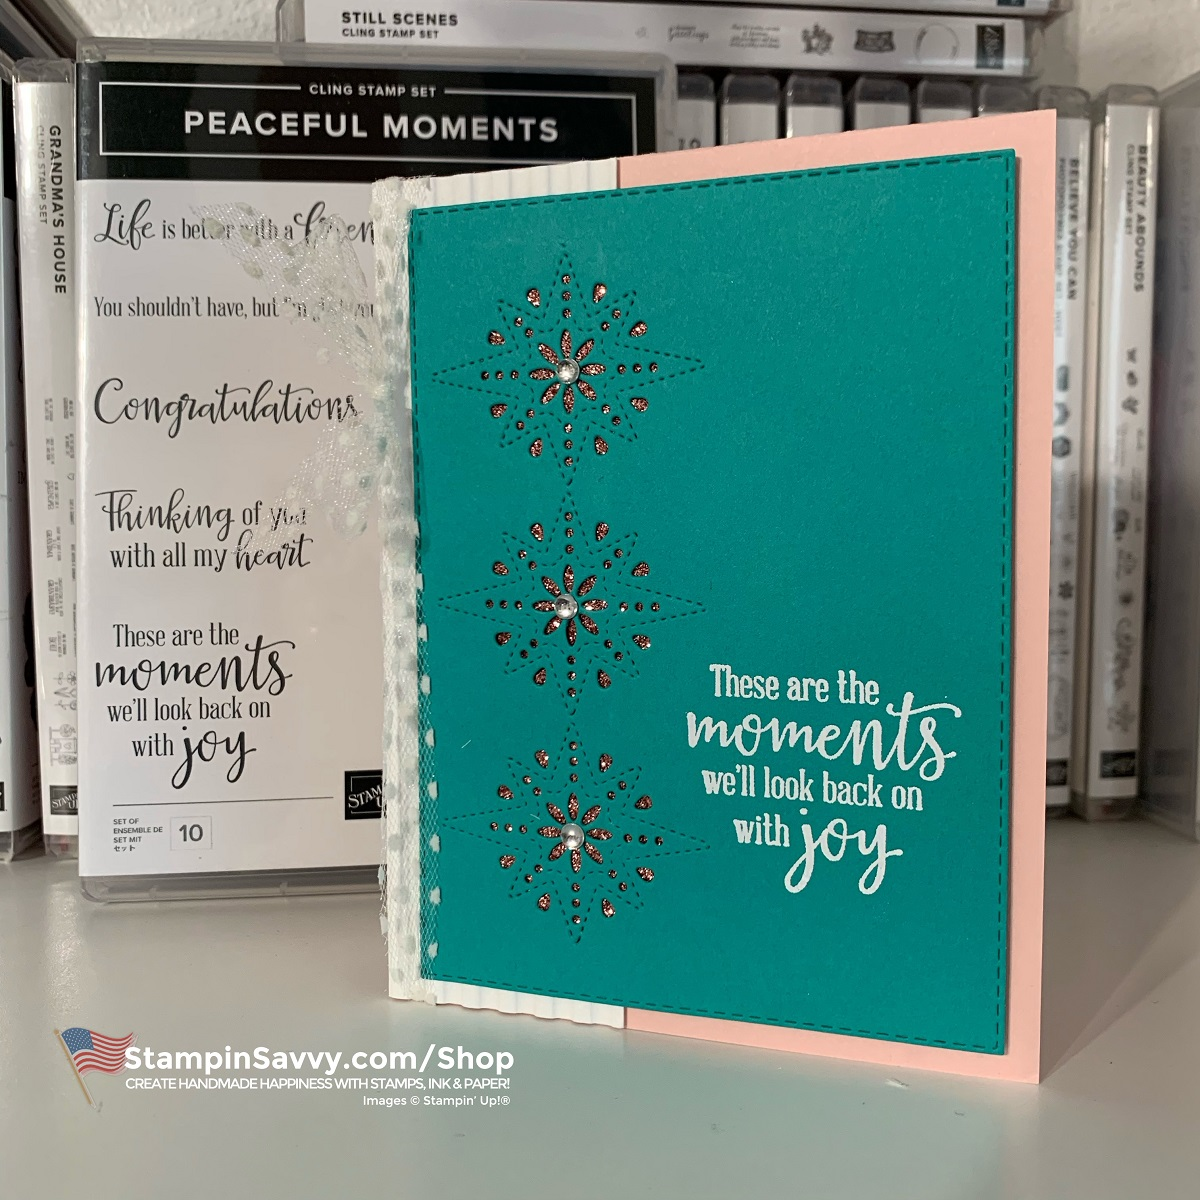 STITCHED-BRIGHTLY-DIES-PEACEFUL-MOMENTS-CARD-IDEAS-STAMPIN-SAVVY-TAMMY-BEARD-STAMPIN-UP